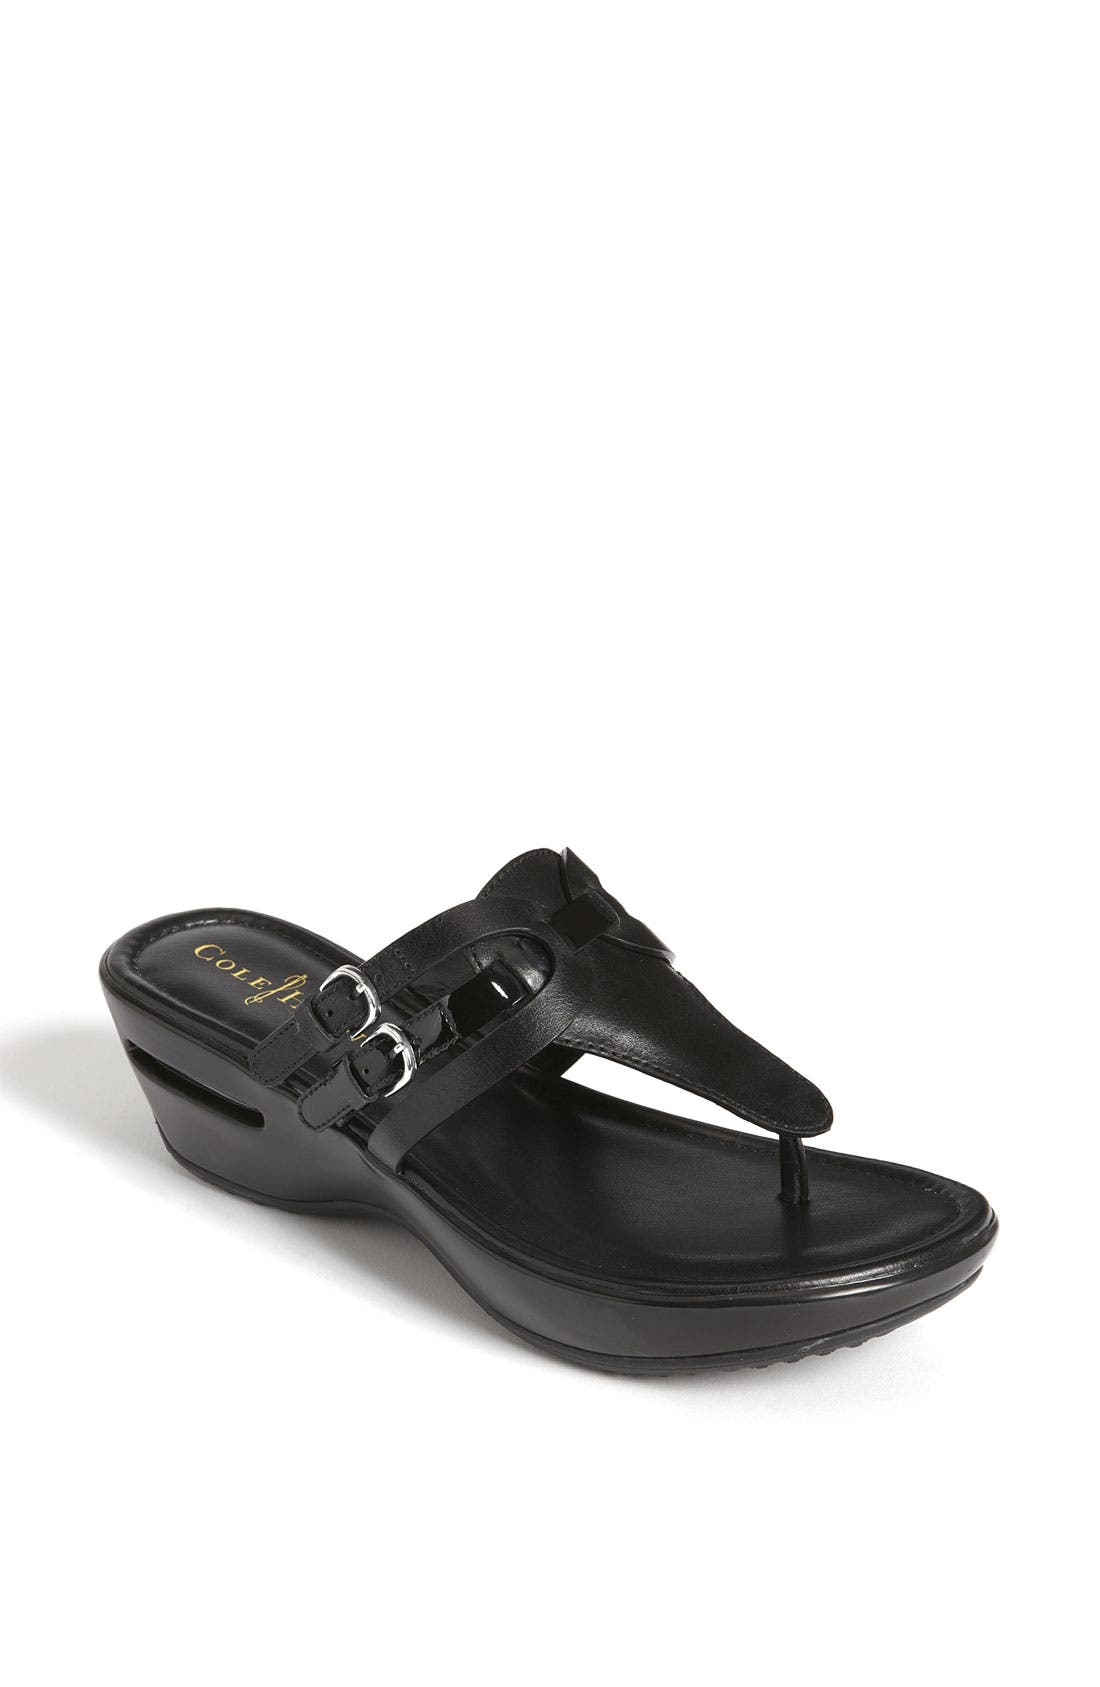 Main Image - Cole Haan 'Air Melisa' Thong Sandal (Exclusive)